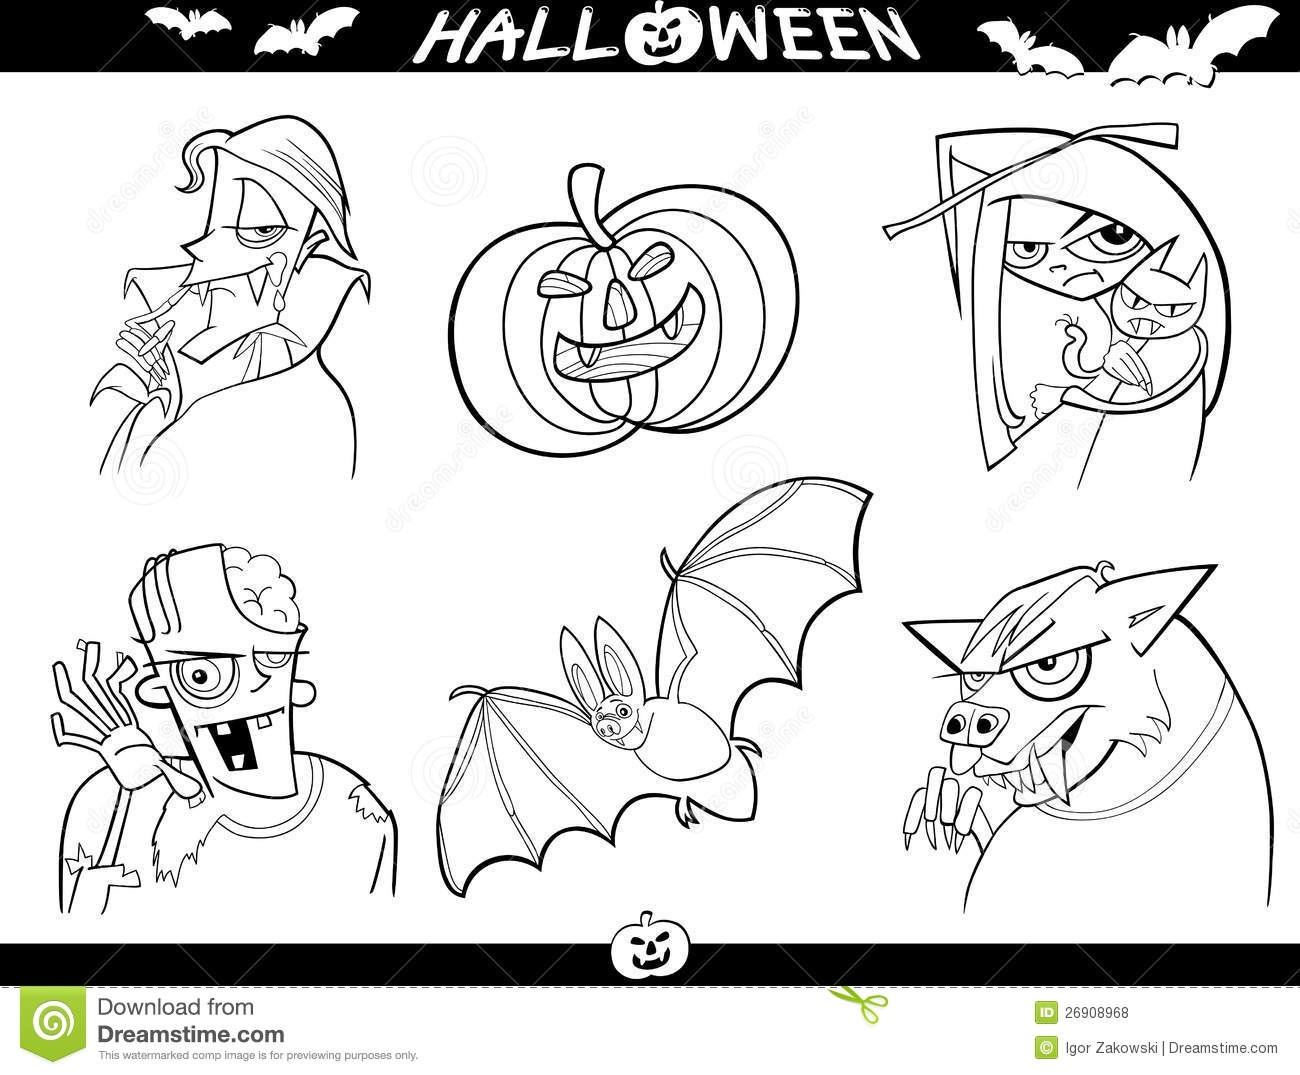 HD wallpapers halloween coloring pages zombie